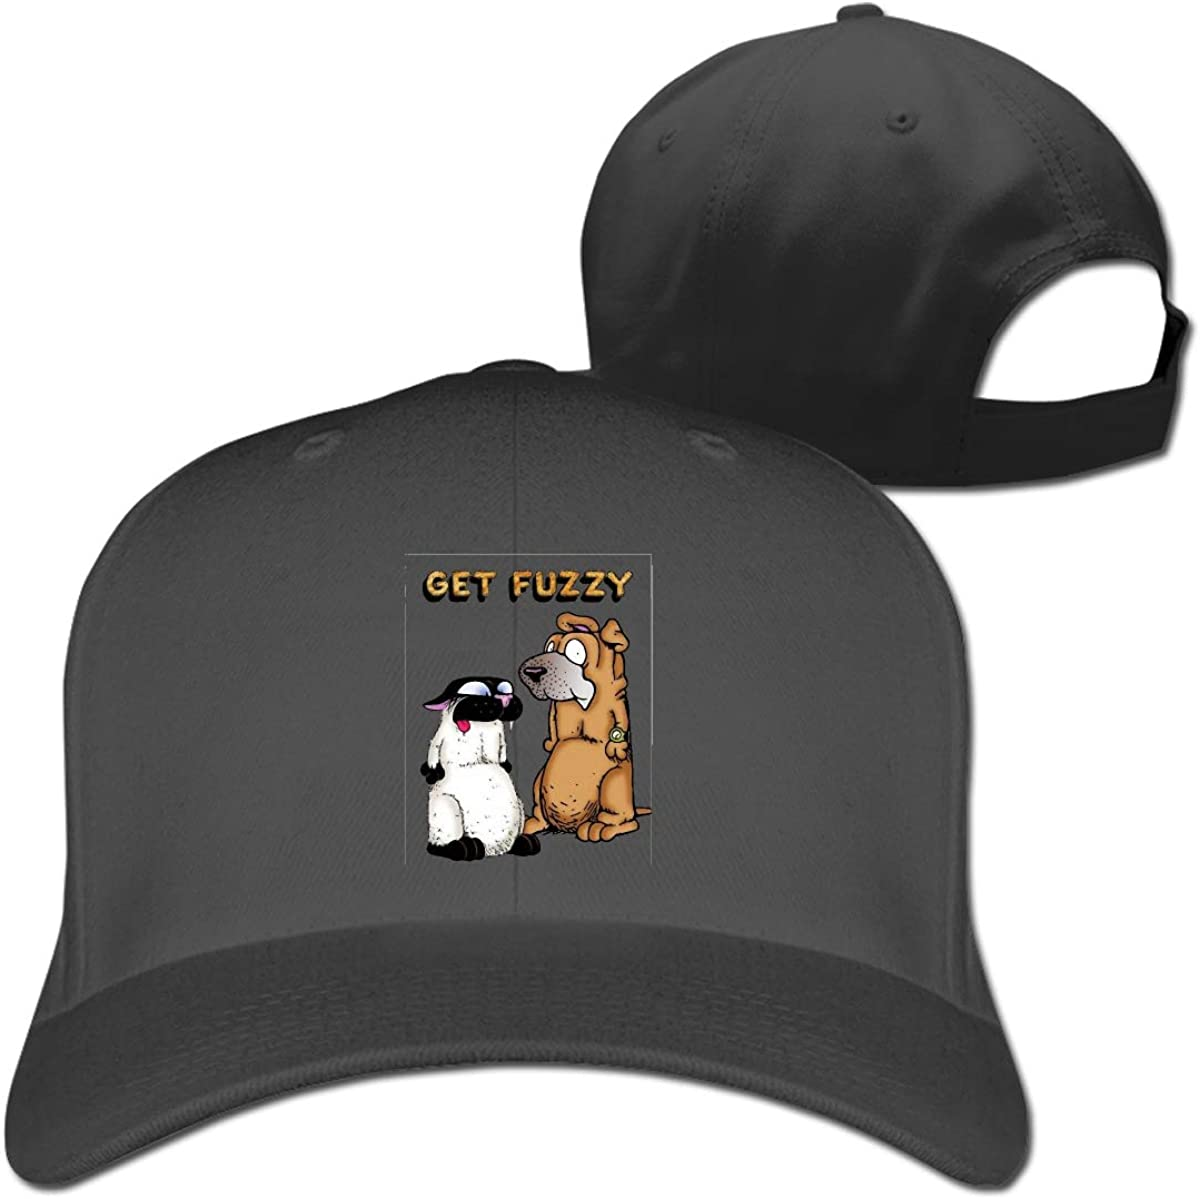 Get Fuzzy Design Fashion Adjustable Cotton Baseball Caps Trucker Driver Hat Outdoor Cap Black